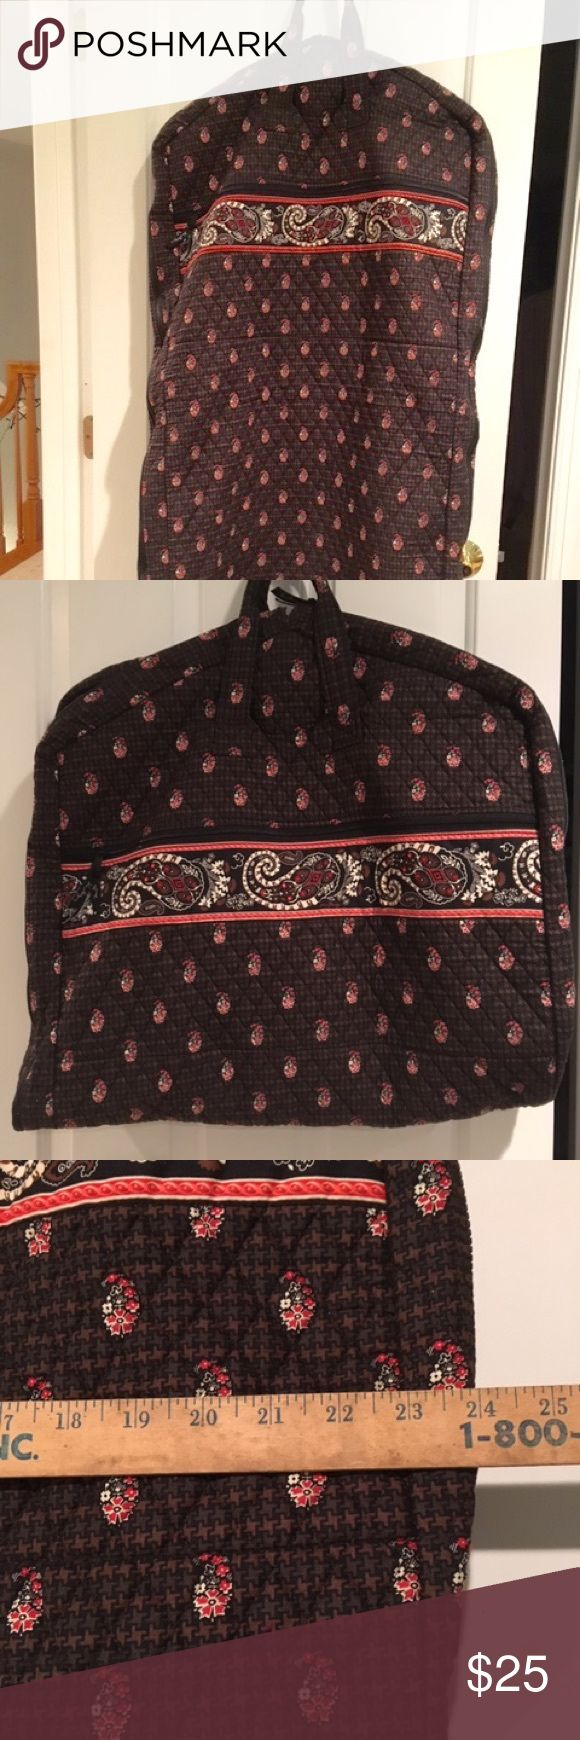 "Stylish Vera Bradley Garment Bag This is a super cool and stylish garment bag or travel bag from Vera Bradley. Very decently sized, 47"" x 24,"" this can also be bundled smaller and hung as seen in photo 2. Travel comfortably and in style with this awesome bag. Accepting offers. Thank you. Vera Bradley Bags Travel Bags"